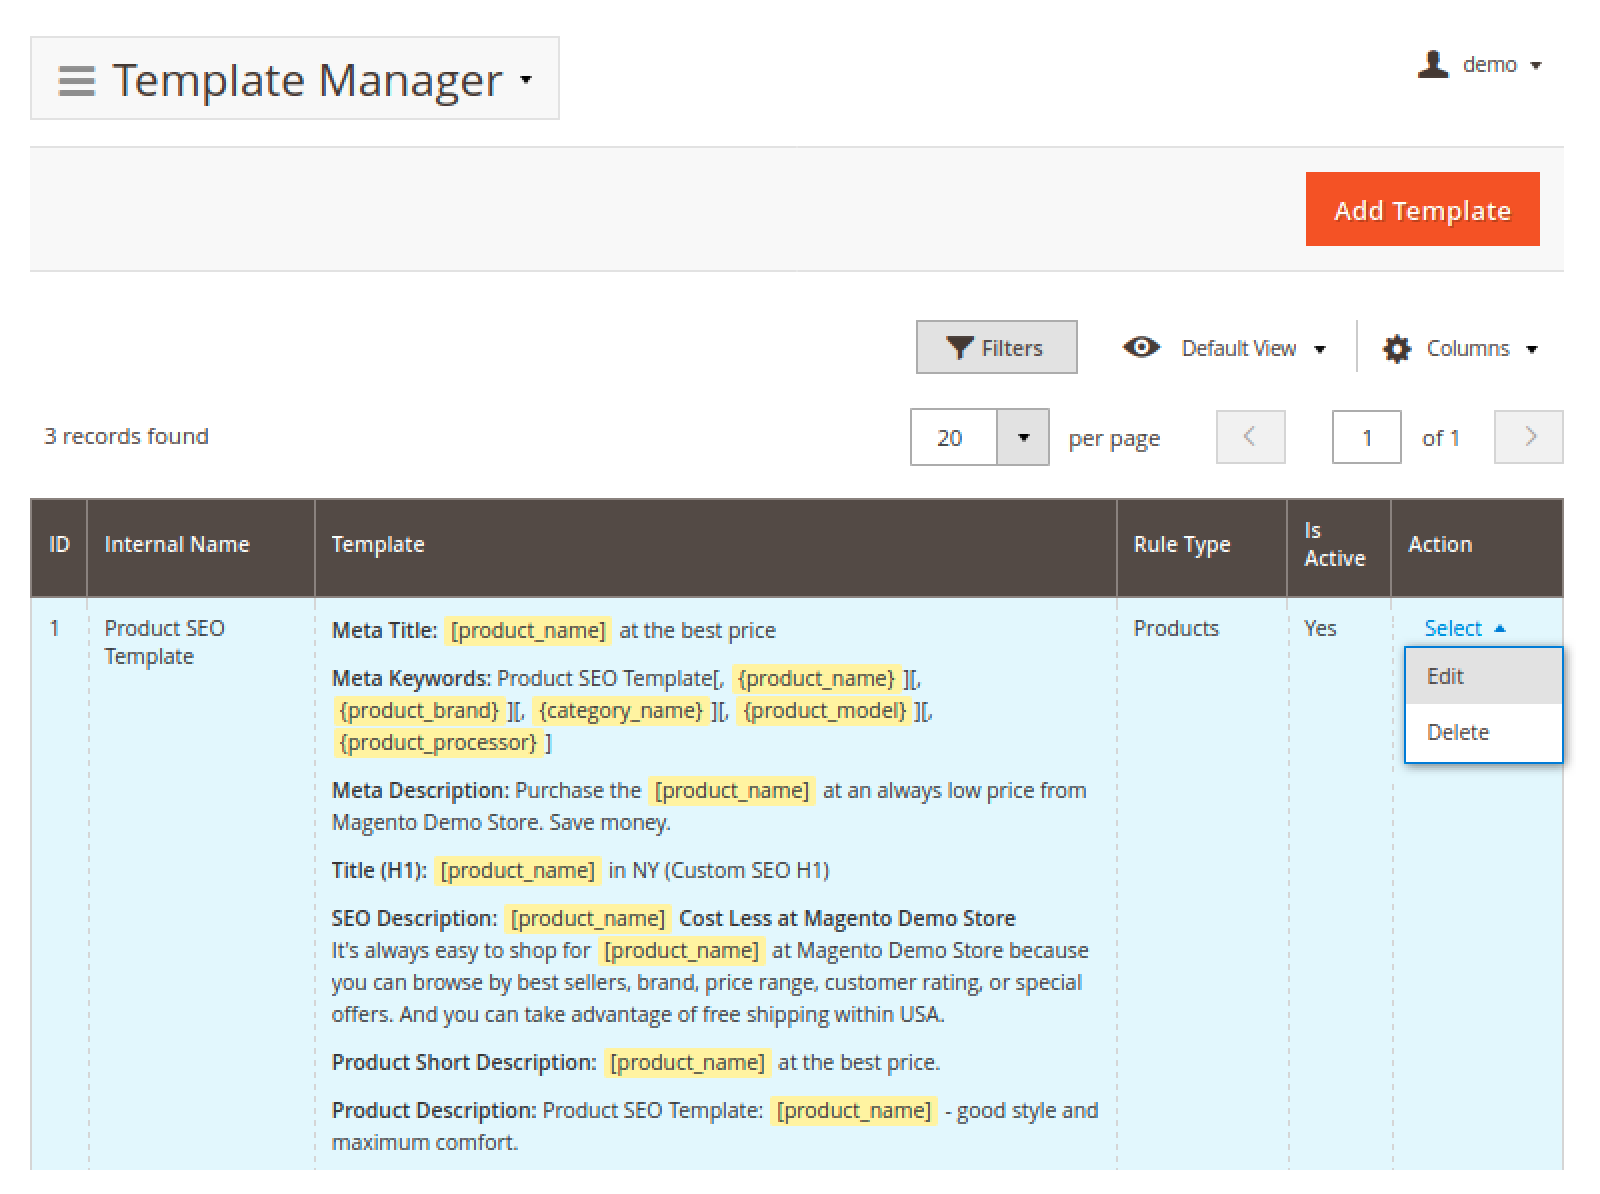 Mirasvit Advanced SEO Suite's Template Manager page